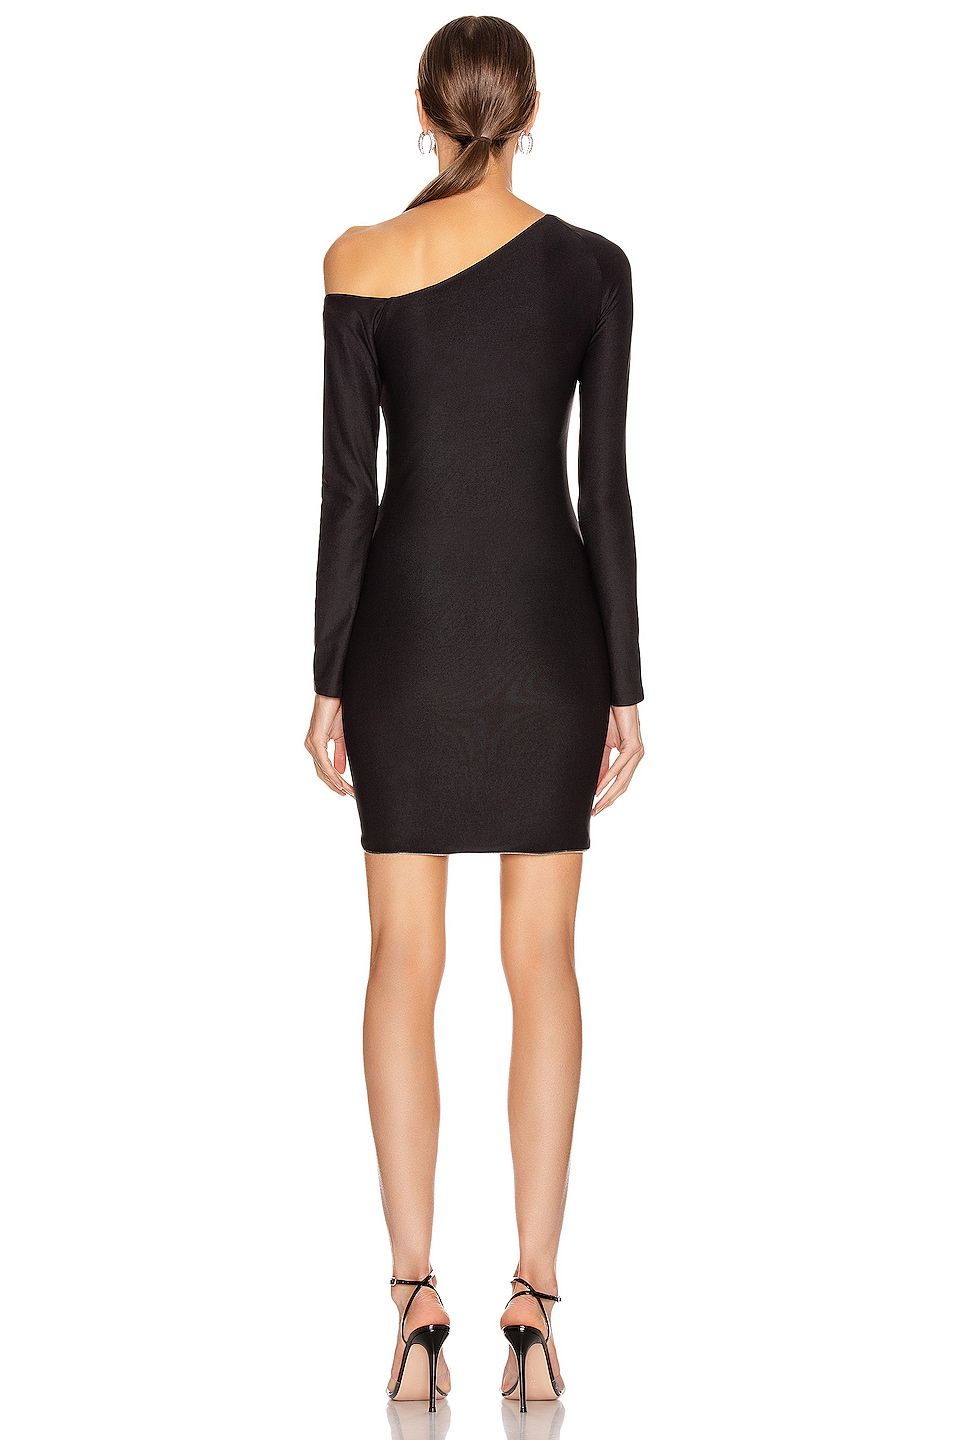 Image 5 of ALIX NYC Ainslie Dress in Black